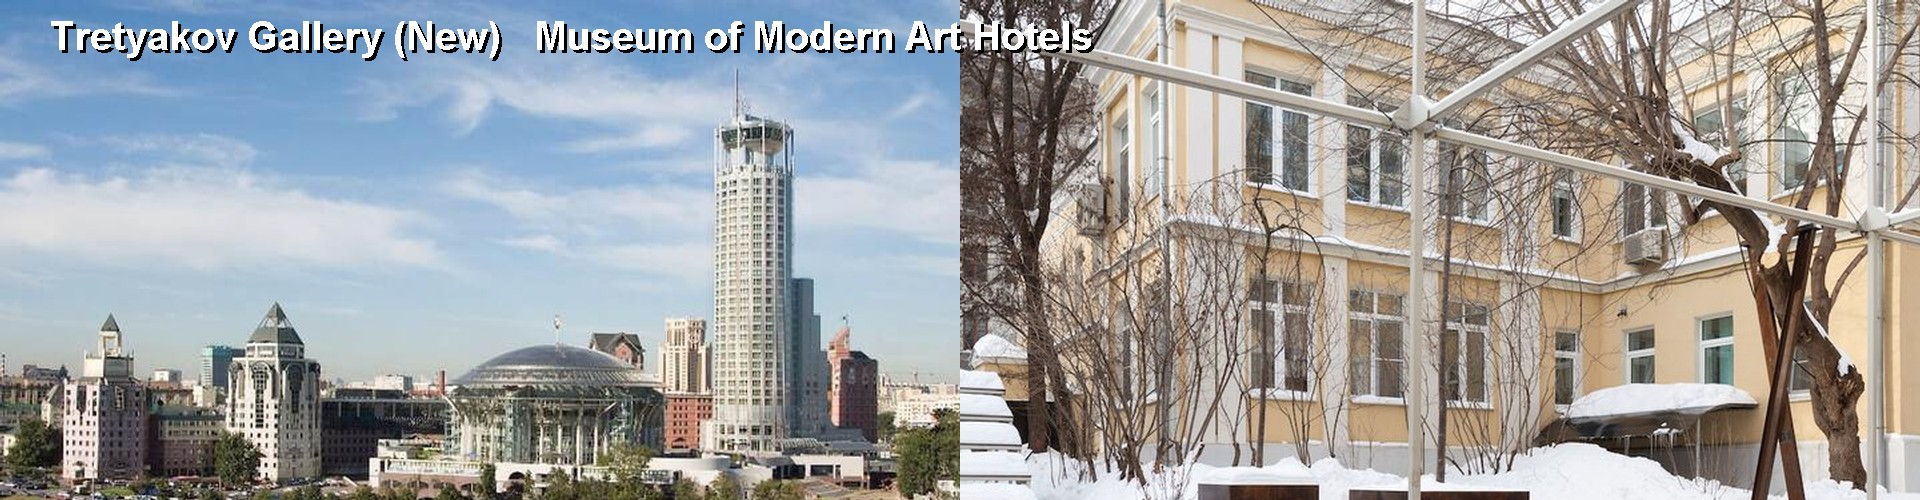 5 Best Hotels near Tretyakov Gallery (New) Museum of Modern Art